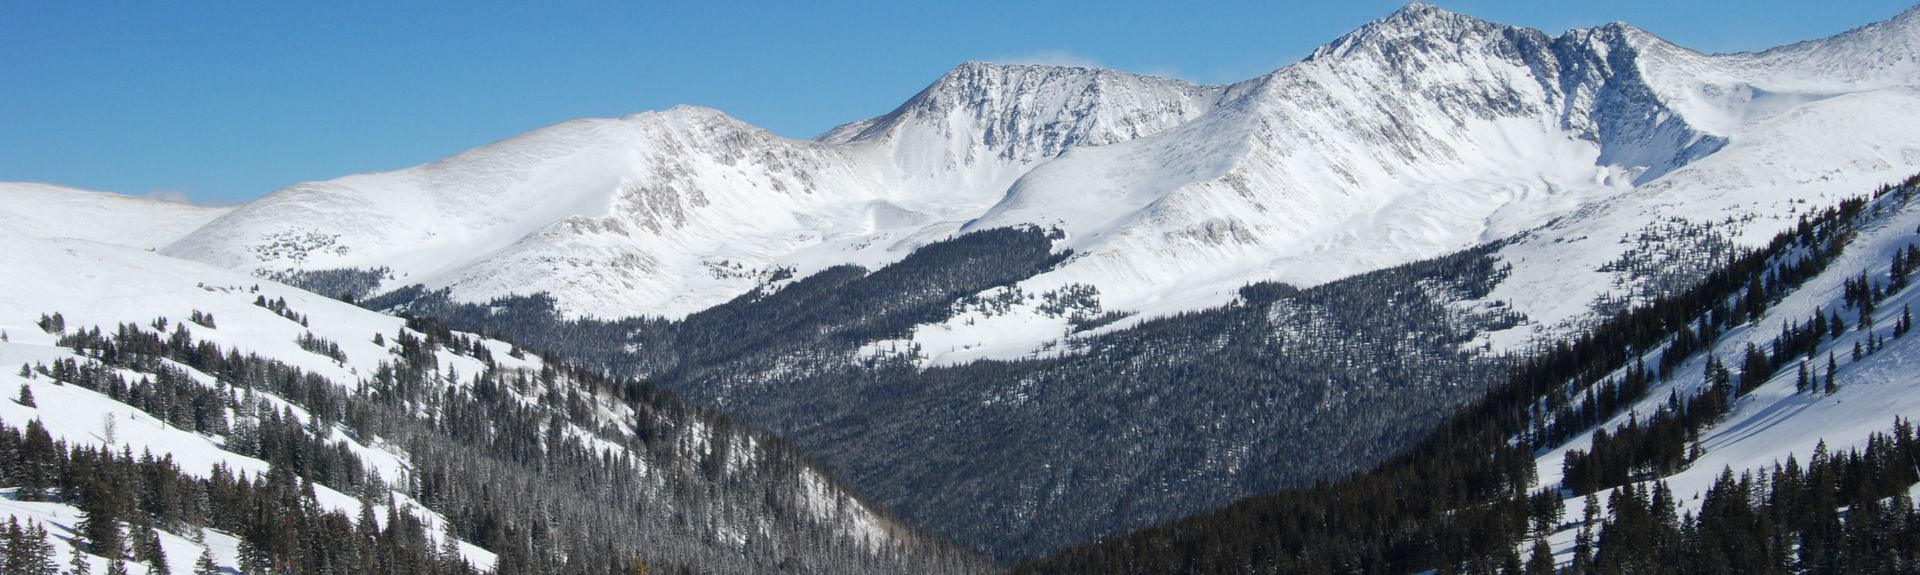 Frisco, Colorado, United States of America